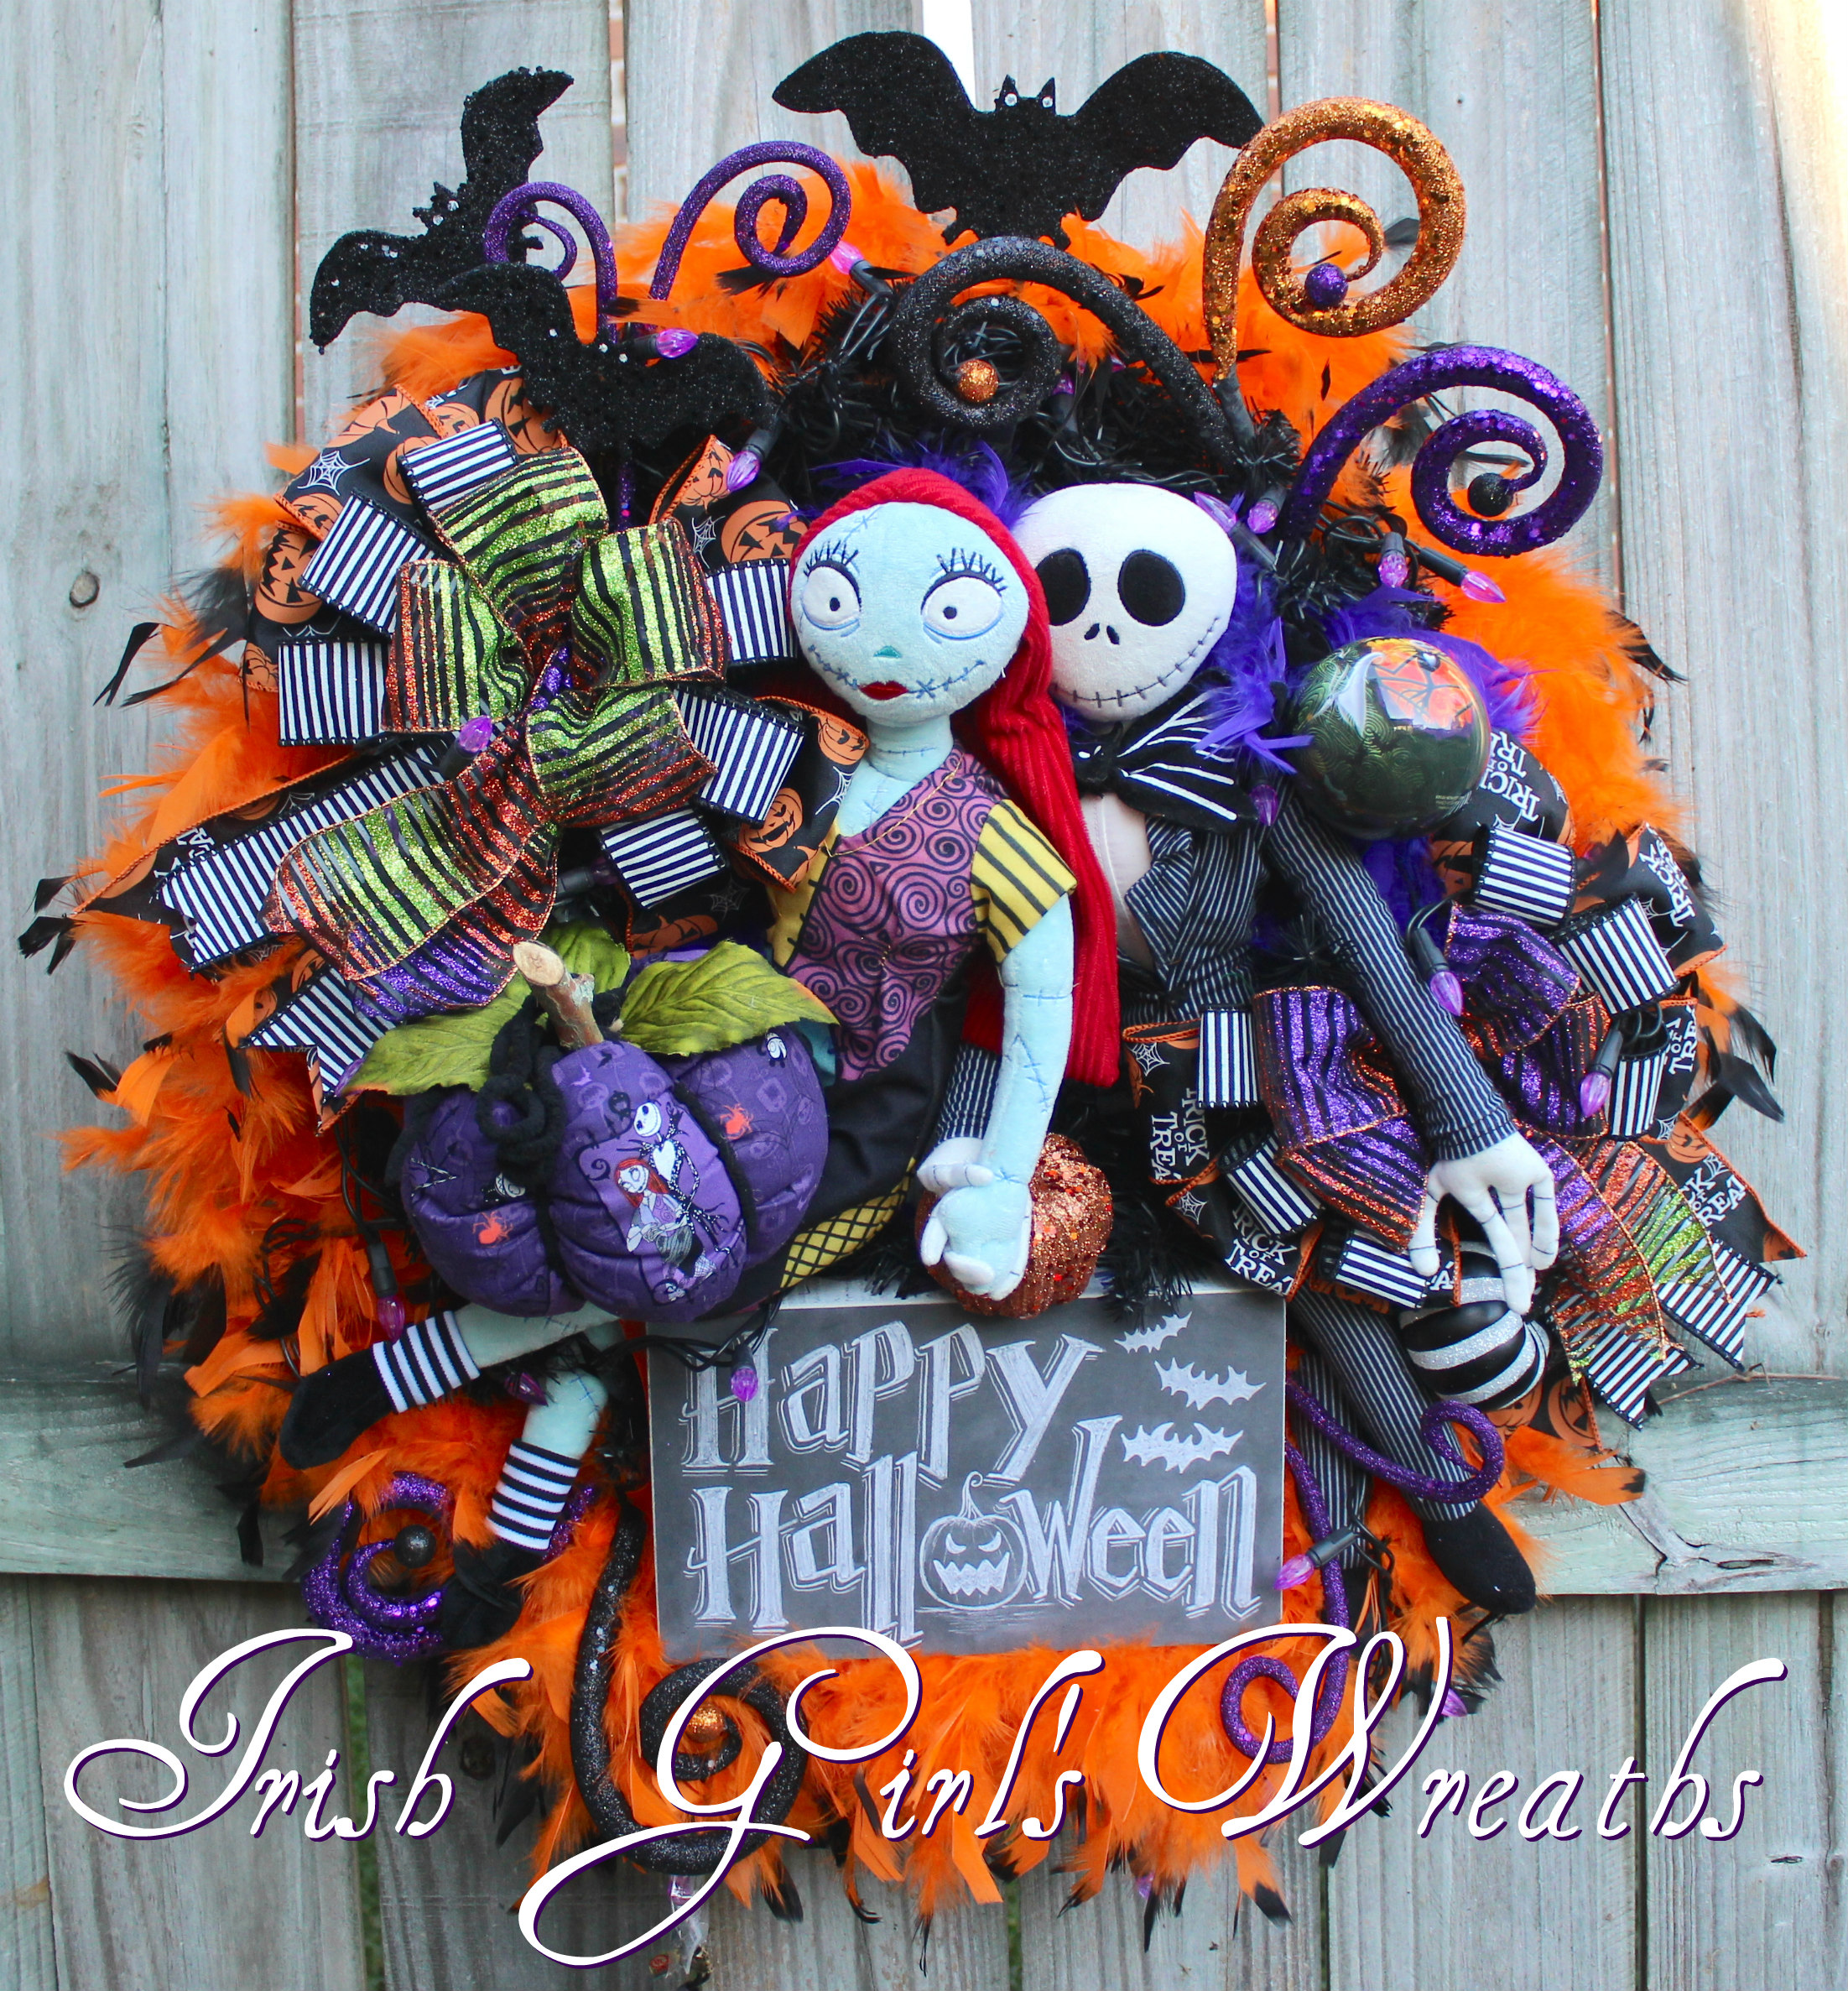 Nightmare Before Christmas Wreath, Pumpkin King Wreath, Pre-lit purple lights